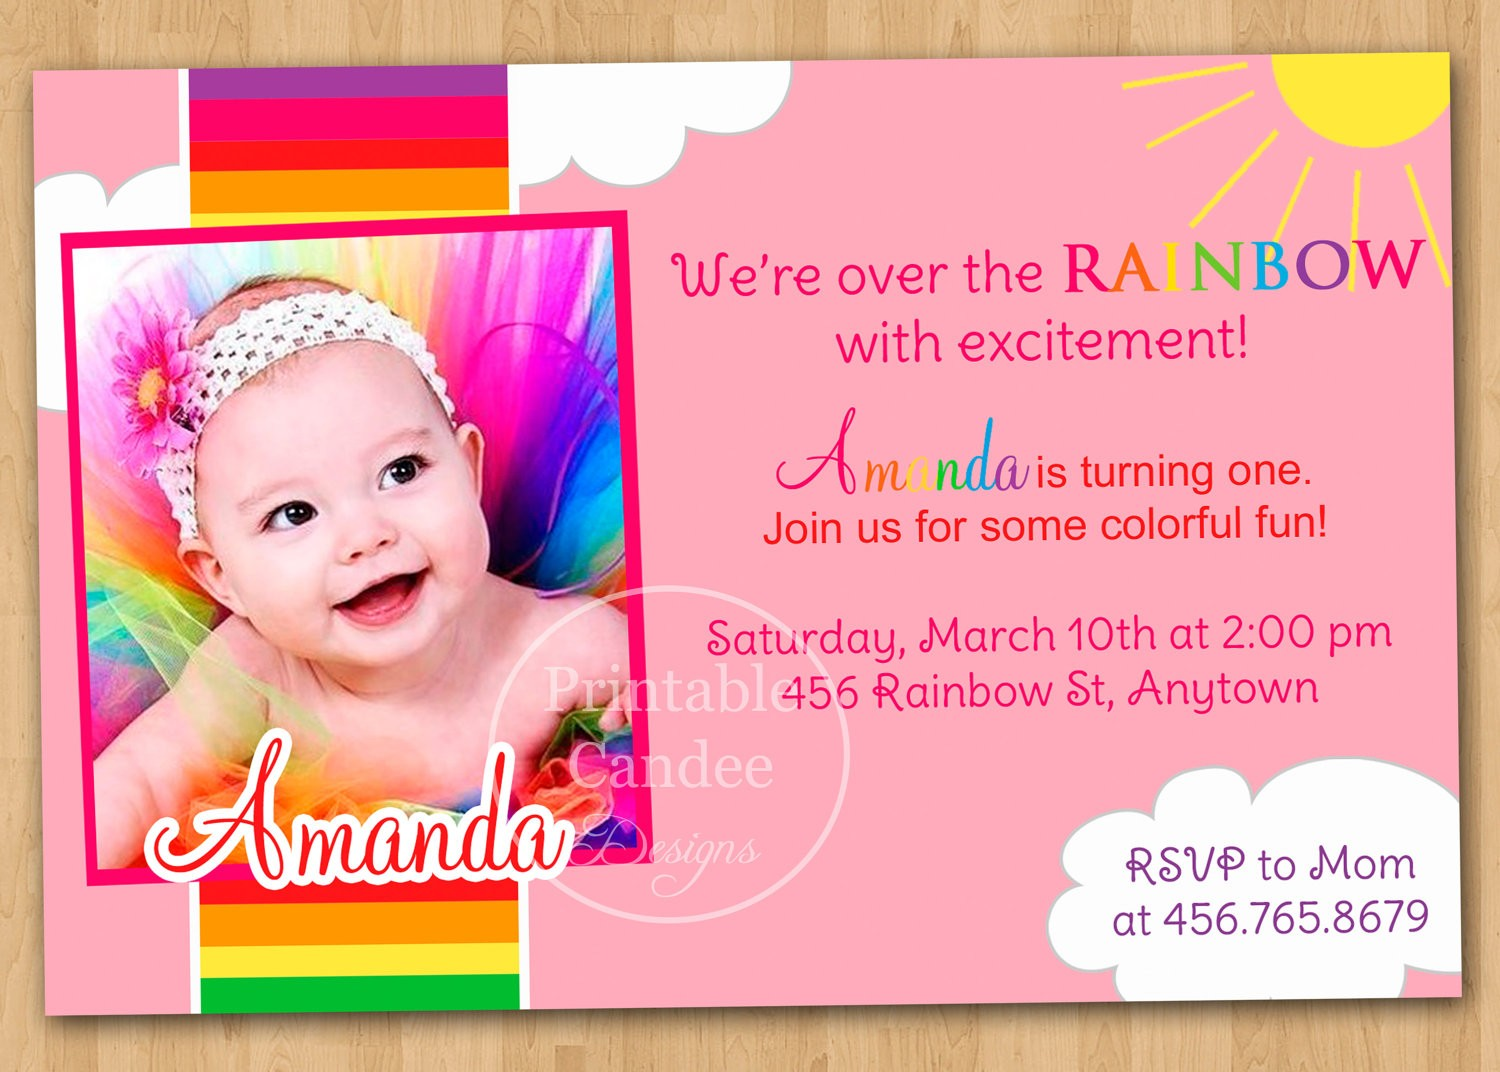 birthday invitation card design template free download ; birthday-invitations-maker-combined-with-various-colors-to-modify-your-Birthday-Invitation-Cards-invitation-card-design-11